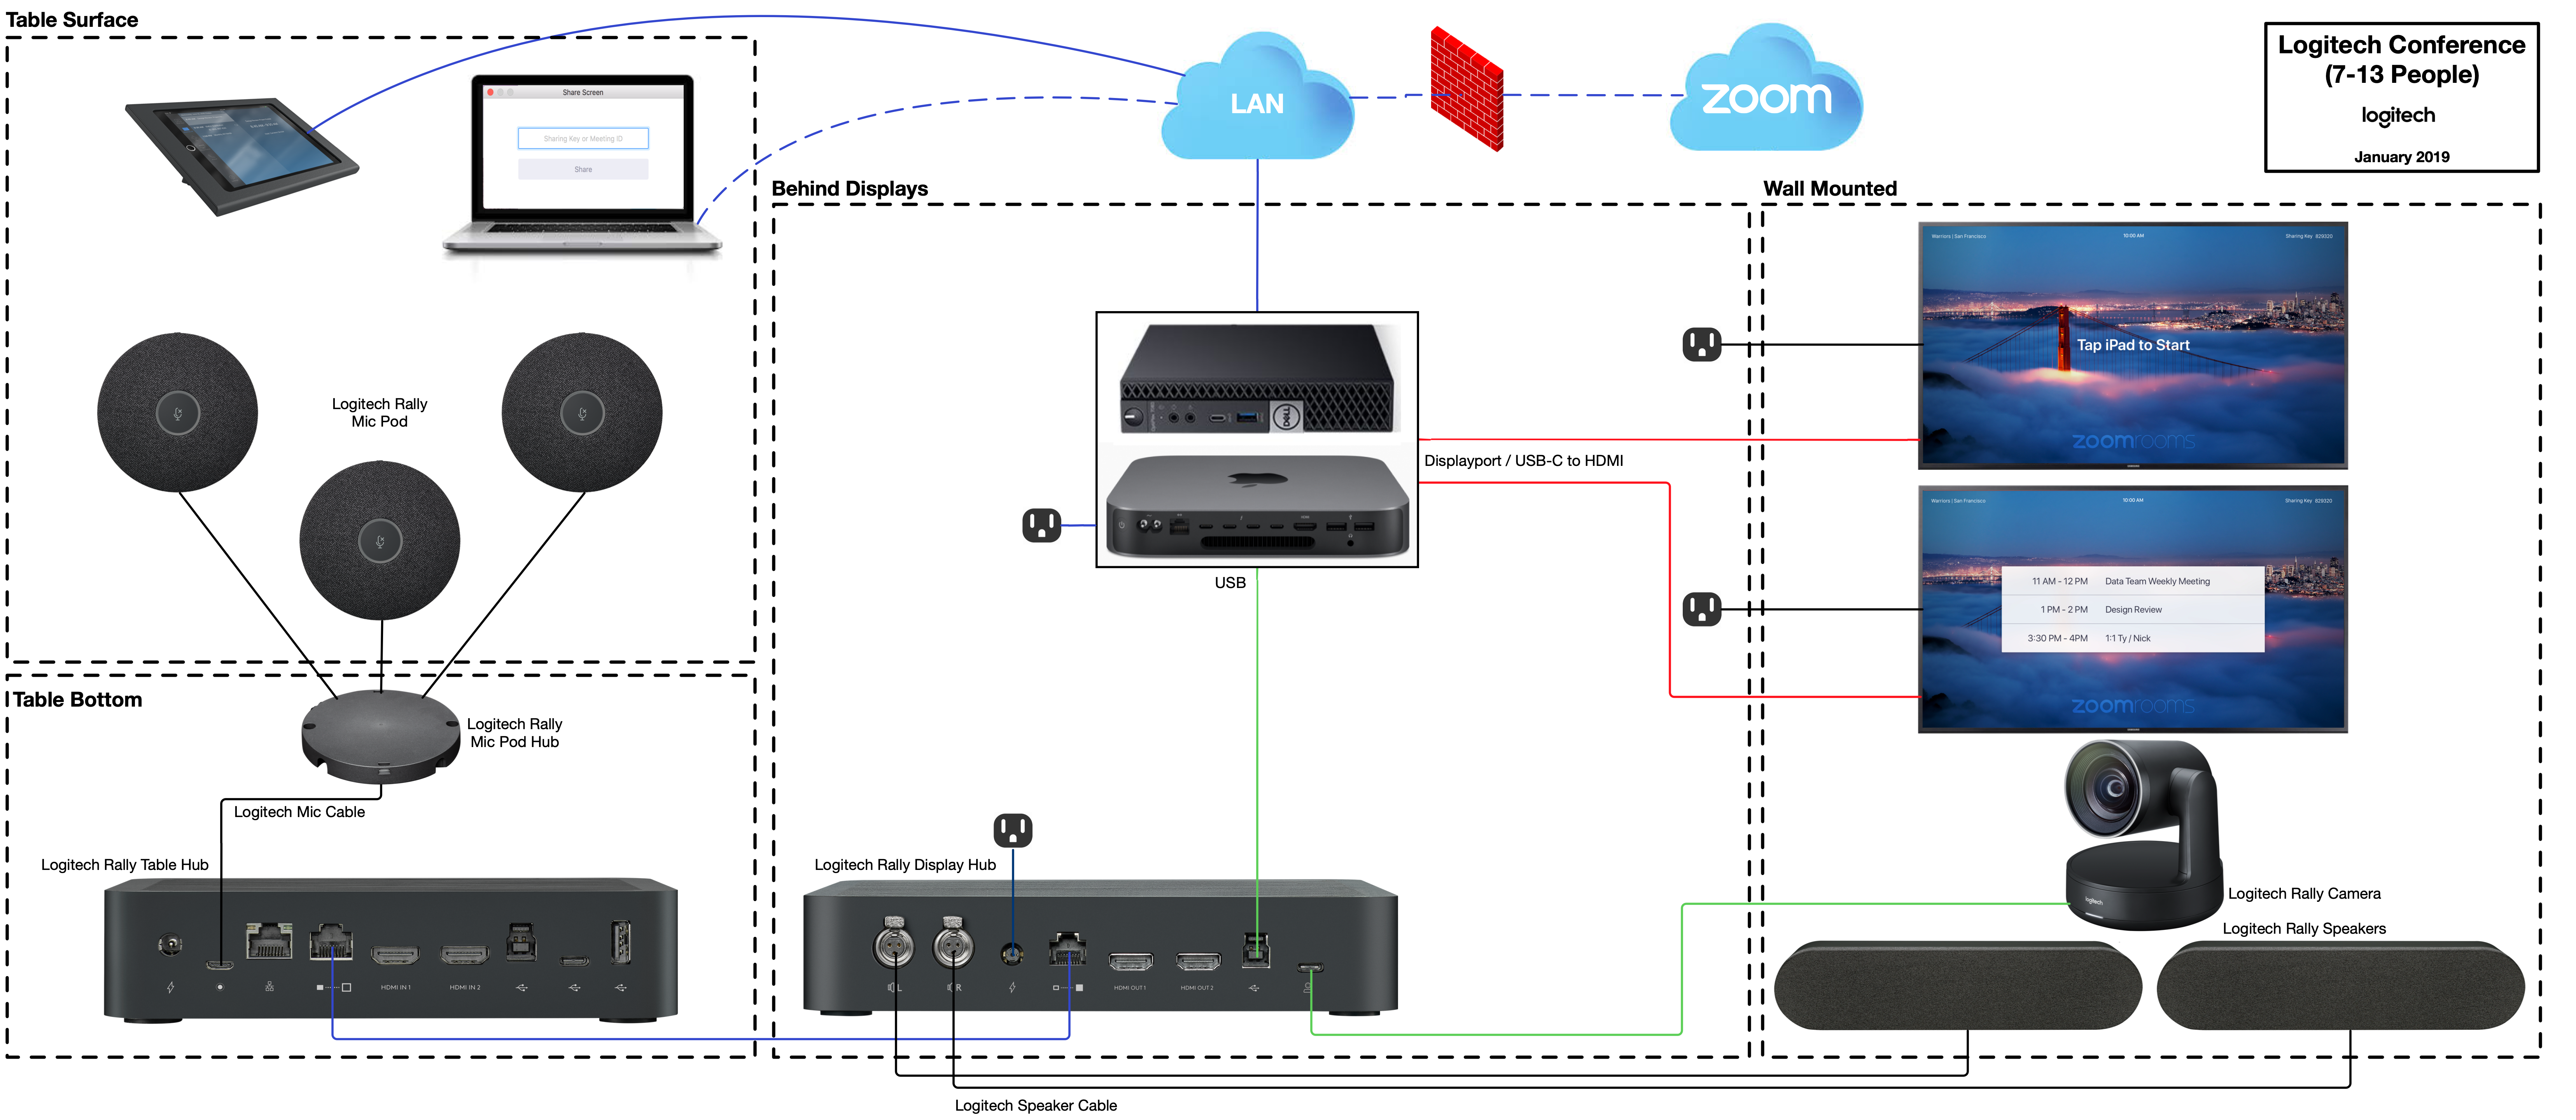 Logitech_-_Pictorial_Schematic_-_Zoom_Rooms__7-13_People_.png